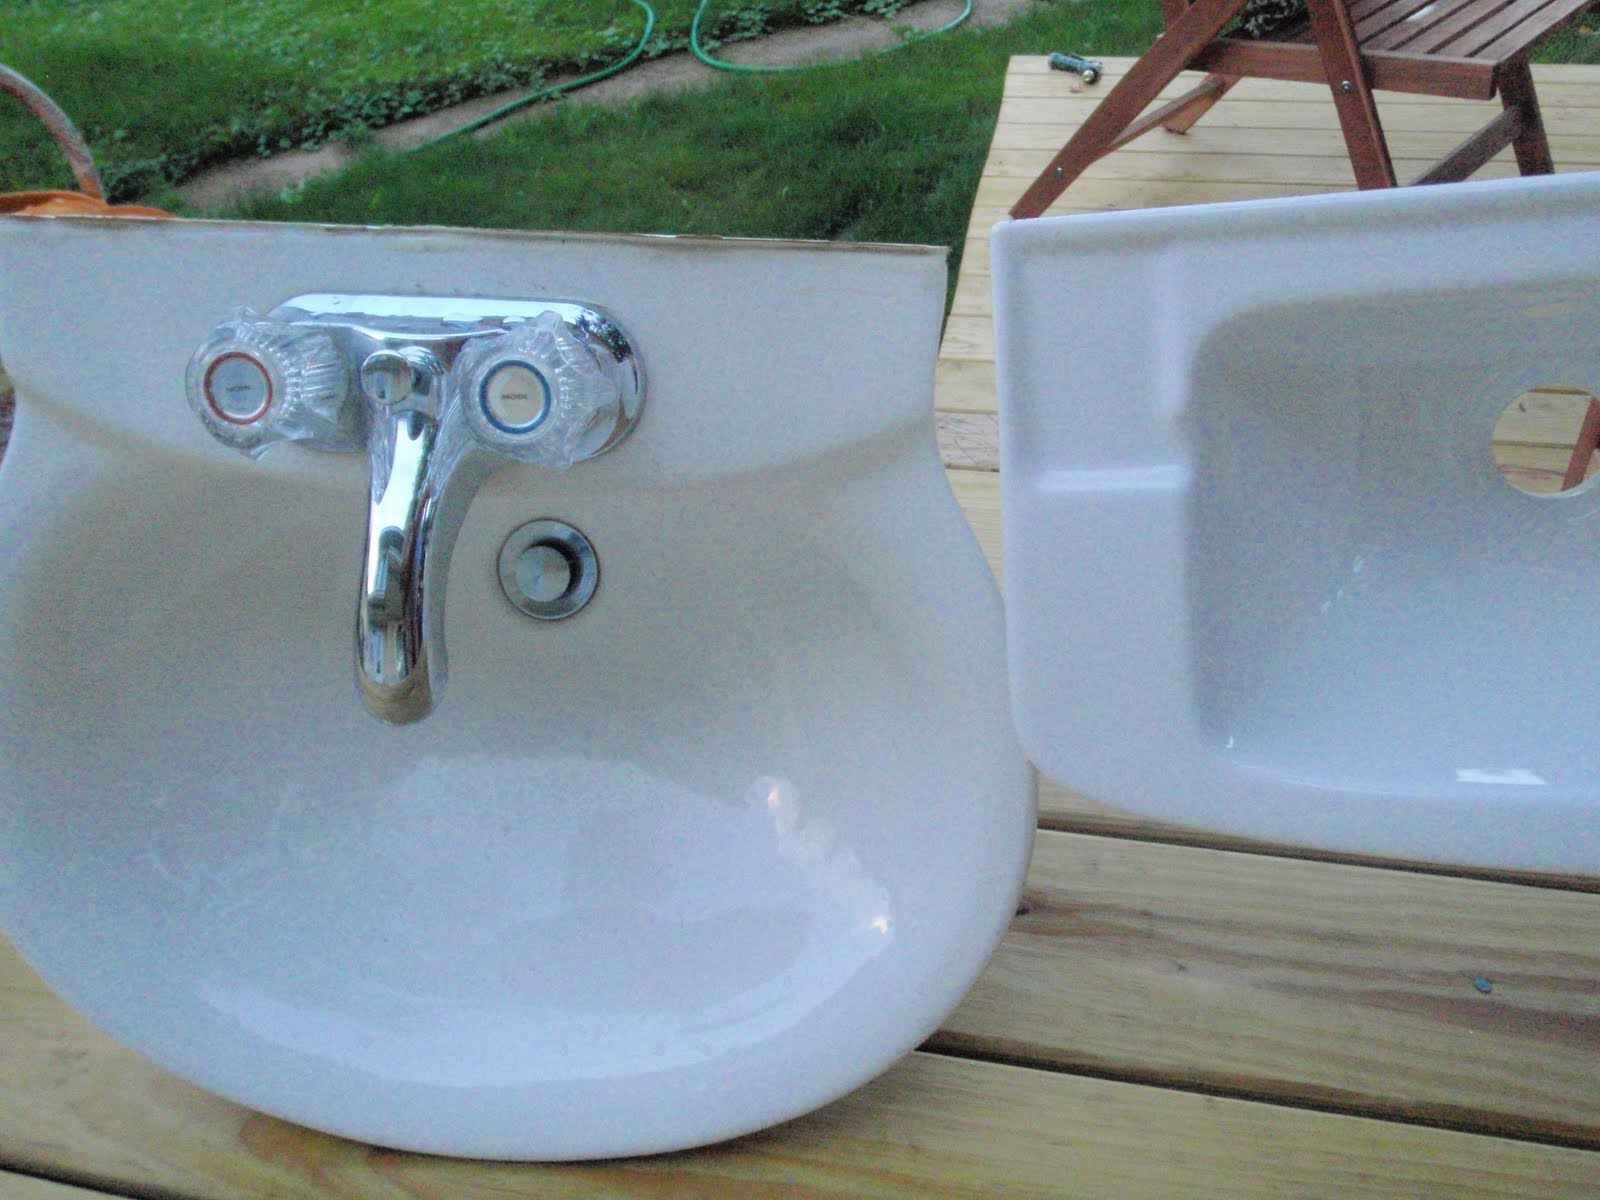 Hammers and High Heels: The New Sink in our Mini Bathroom is Installed!